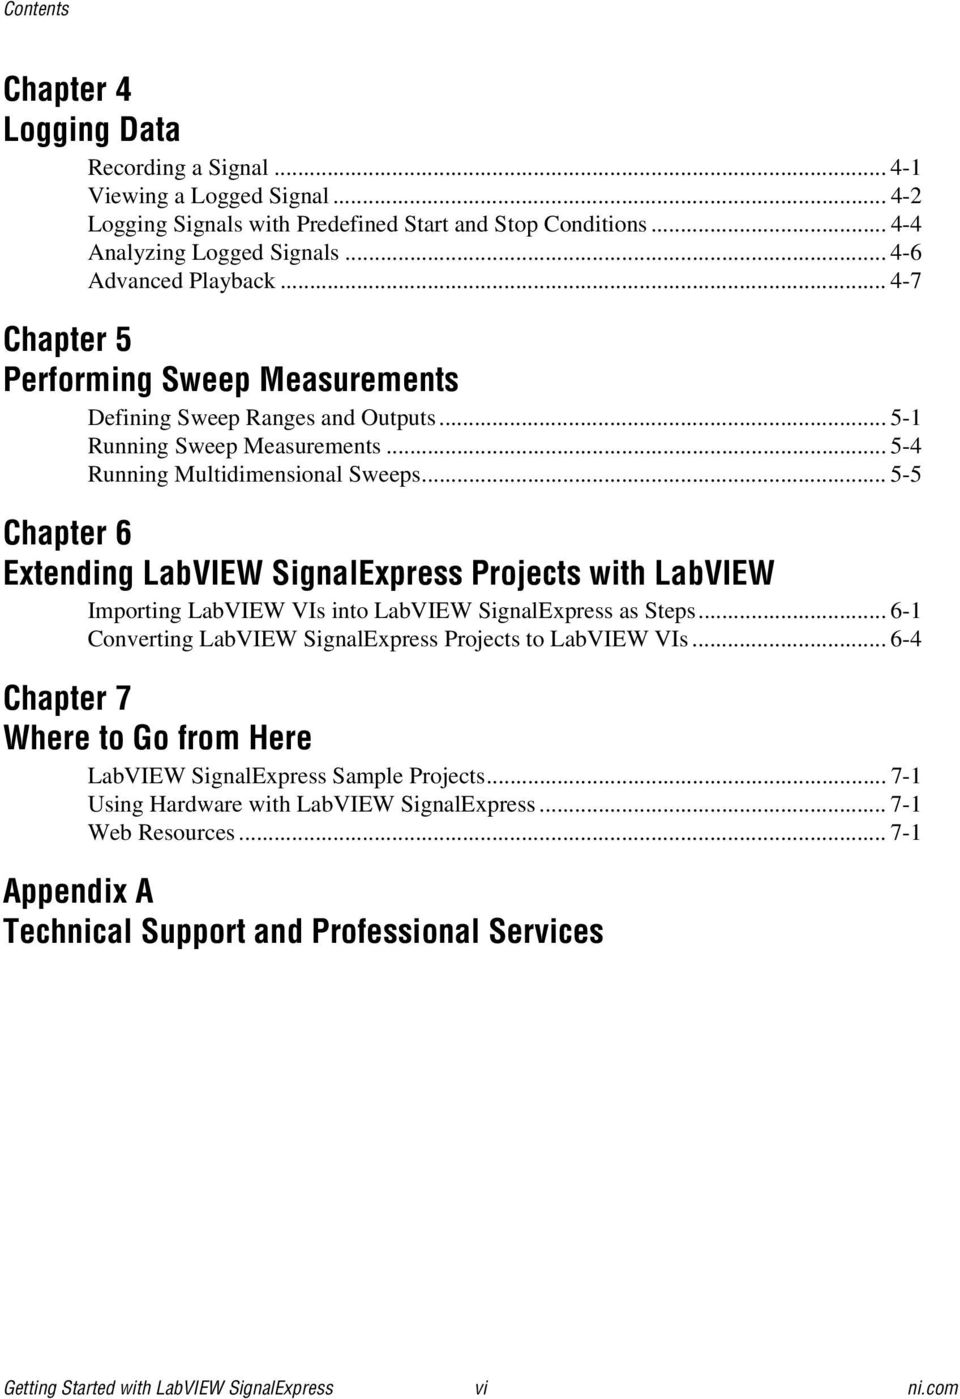 .. 5-5 Chapter 6 Extending LabVIEW SignalExpress Projects with LabVIEW Importing LabVIEW VIs into LabVIEW SignalExpress as Steps... 6-1 Converting LabVIEW SignalExpress Projects to LabVIEW VIs.